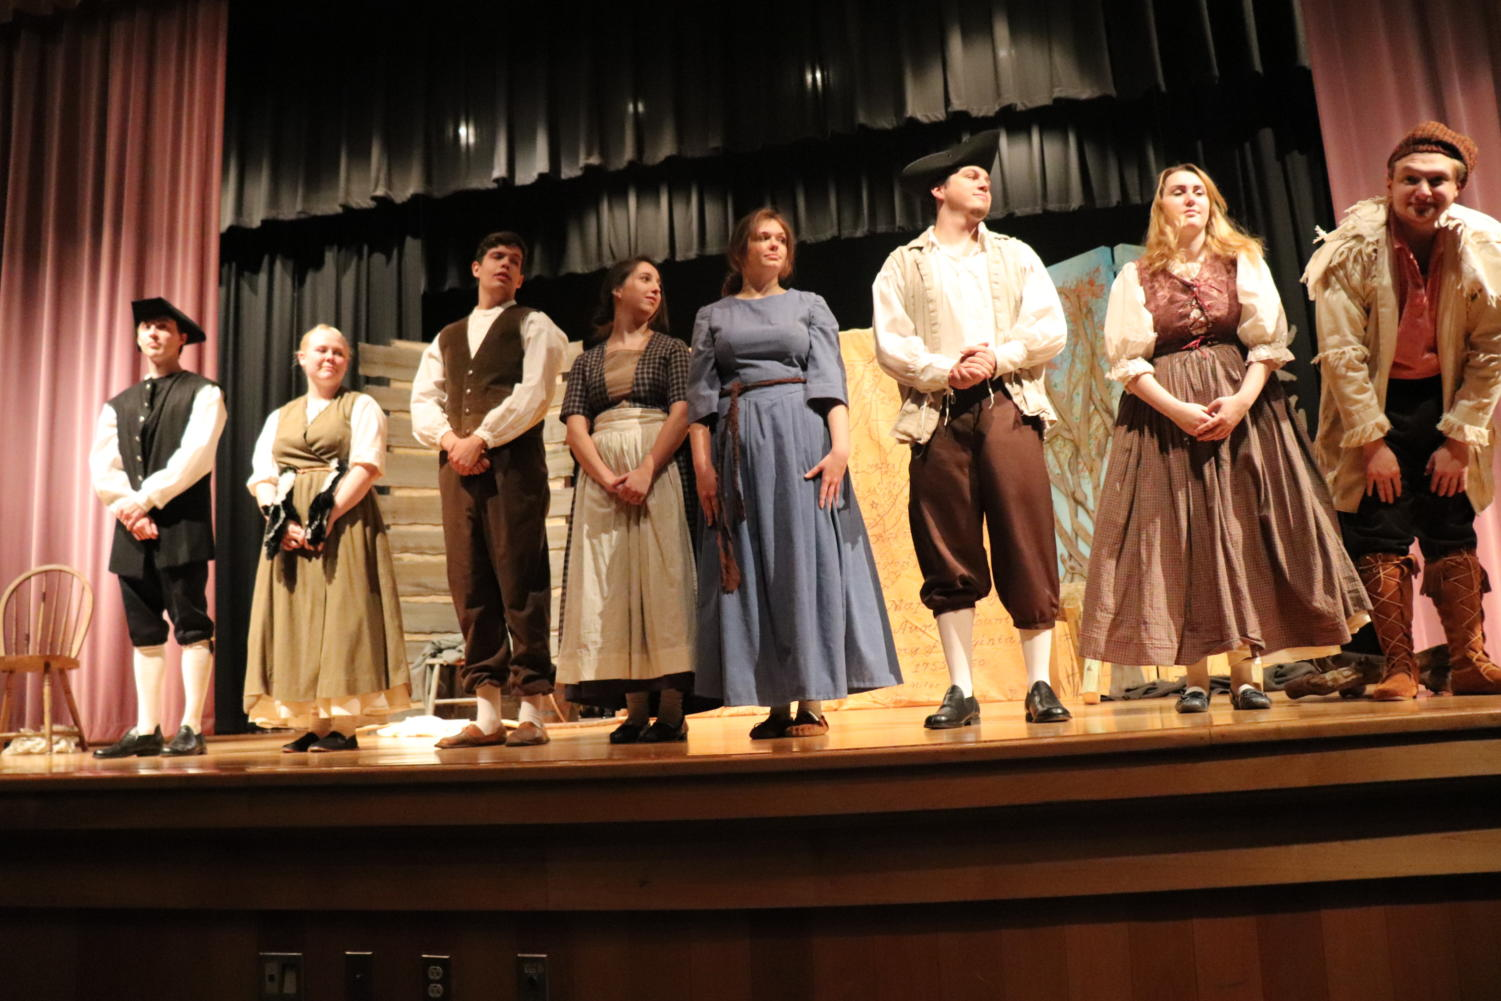 The cast of the play.